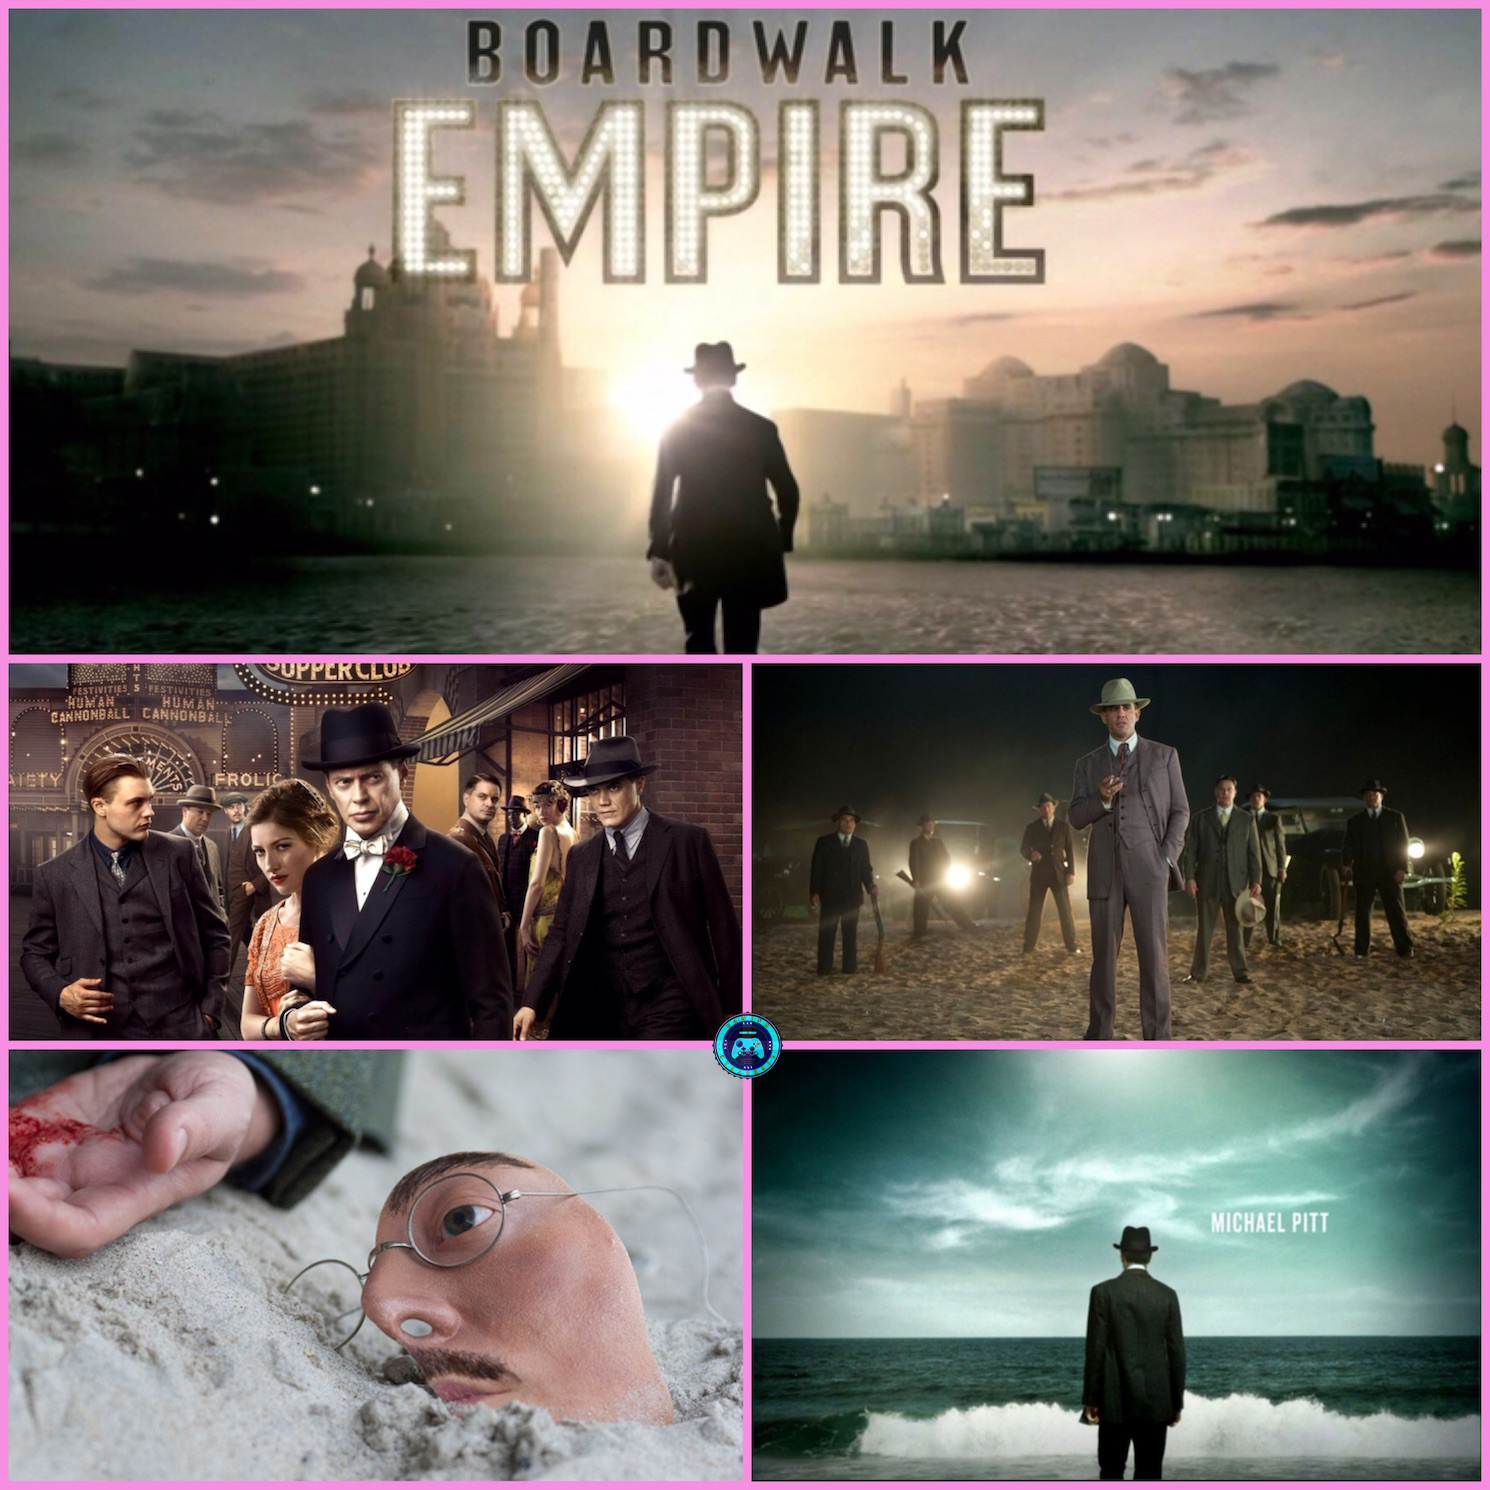 boardwalk-empire-considerazioni-riflessioni-insta-thoughts-serie-tv-cinema